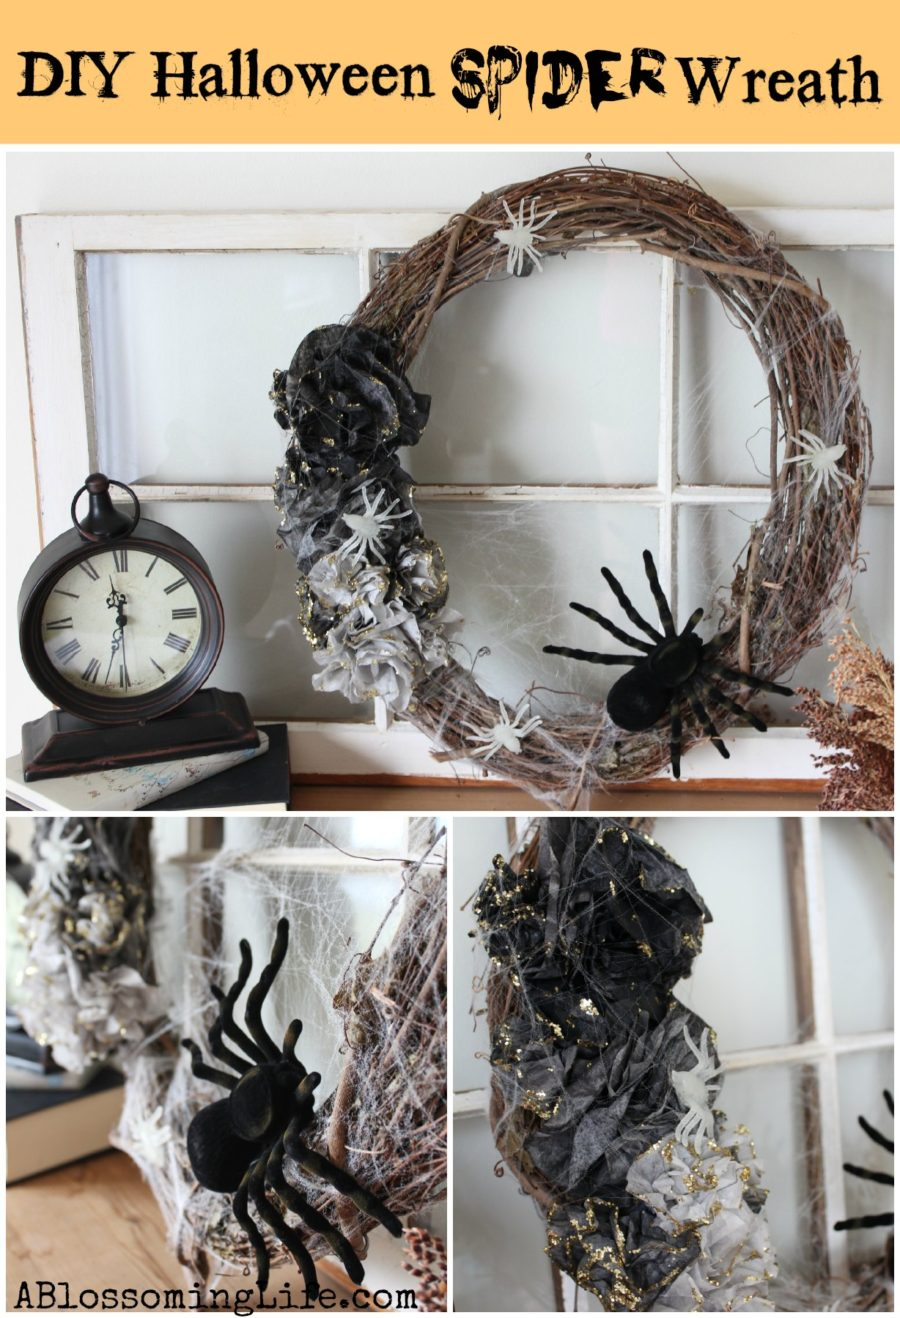 Diy halloween wreath - Diy Halloween Spider Ombre Wreath